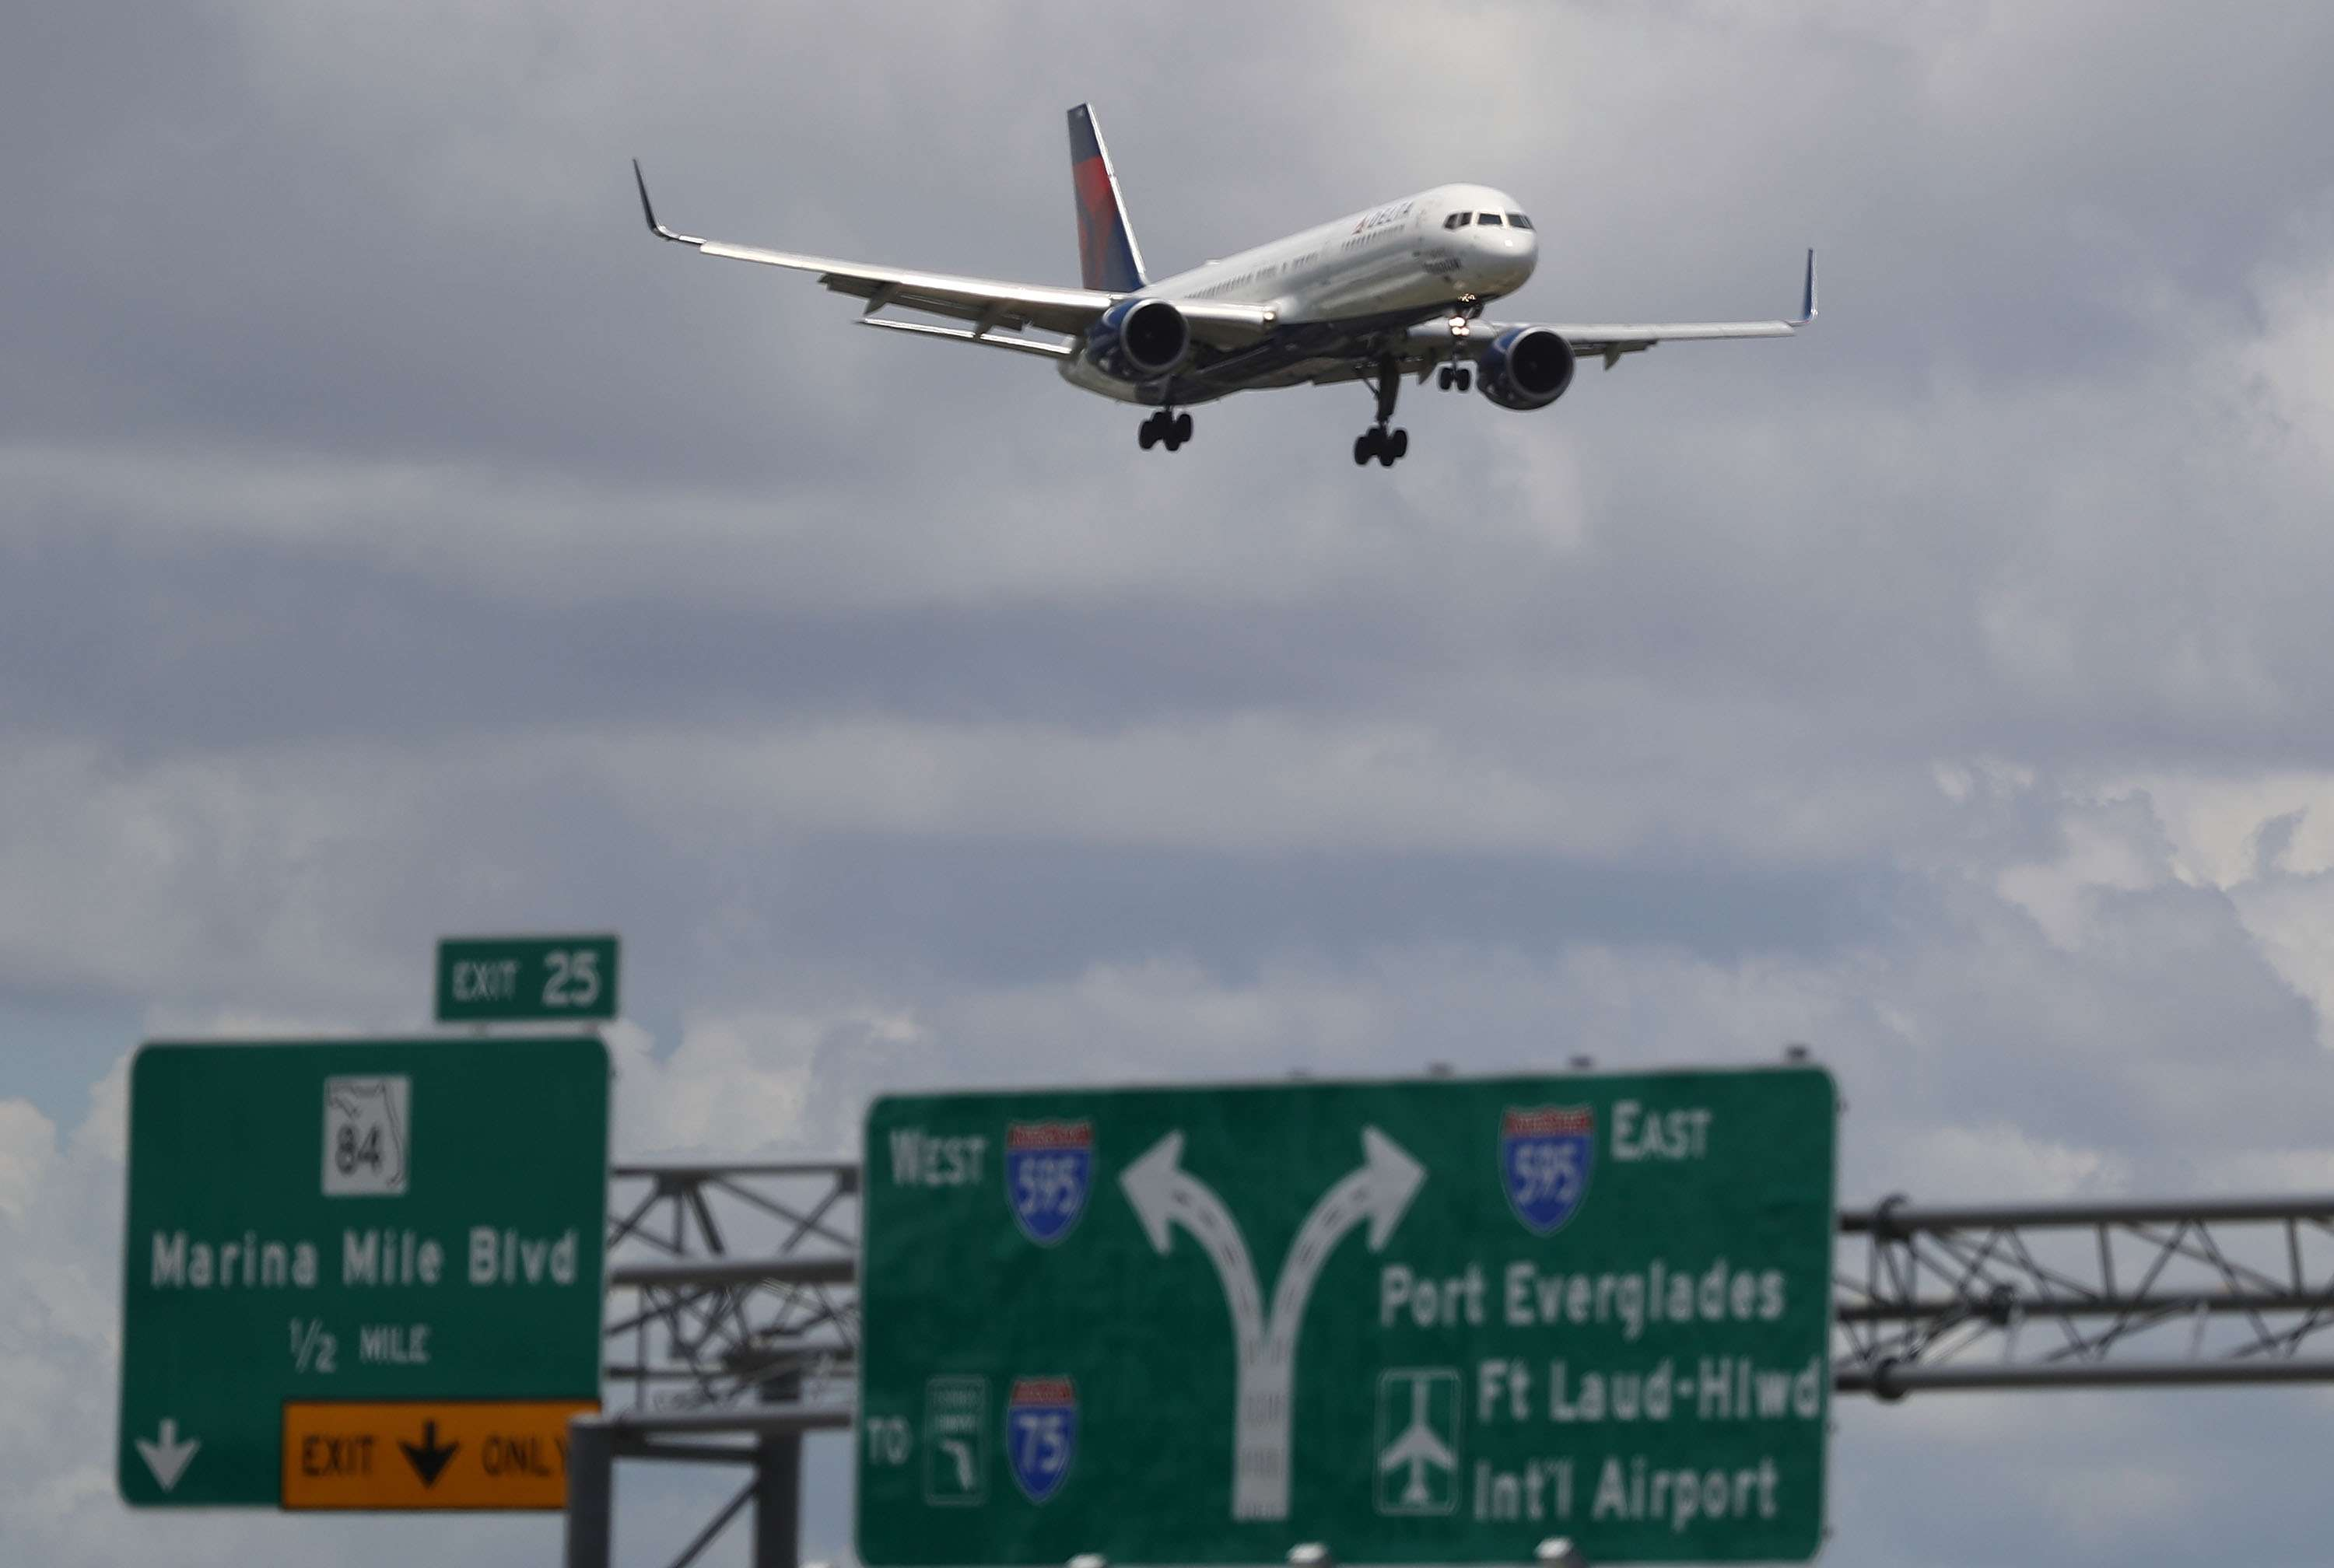 A Delta plane comes in for a landing with freeway signs for Ft Lauderdale Hollywood Airport visible